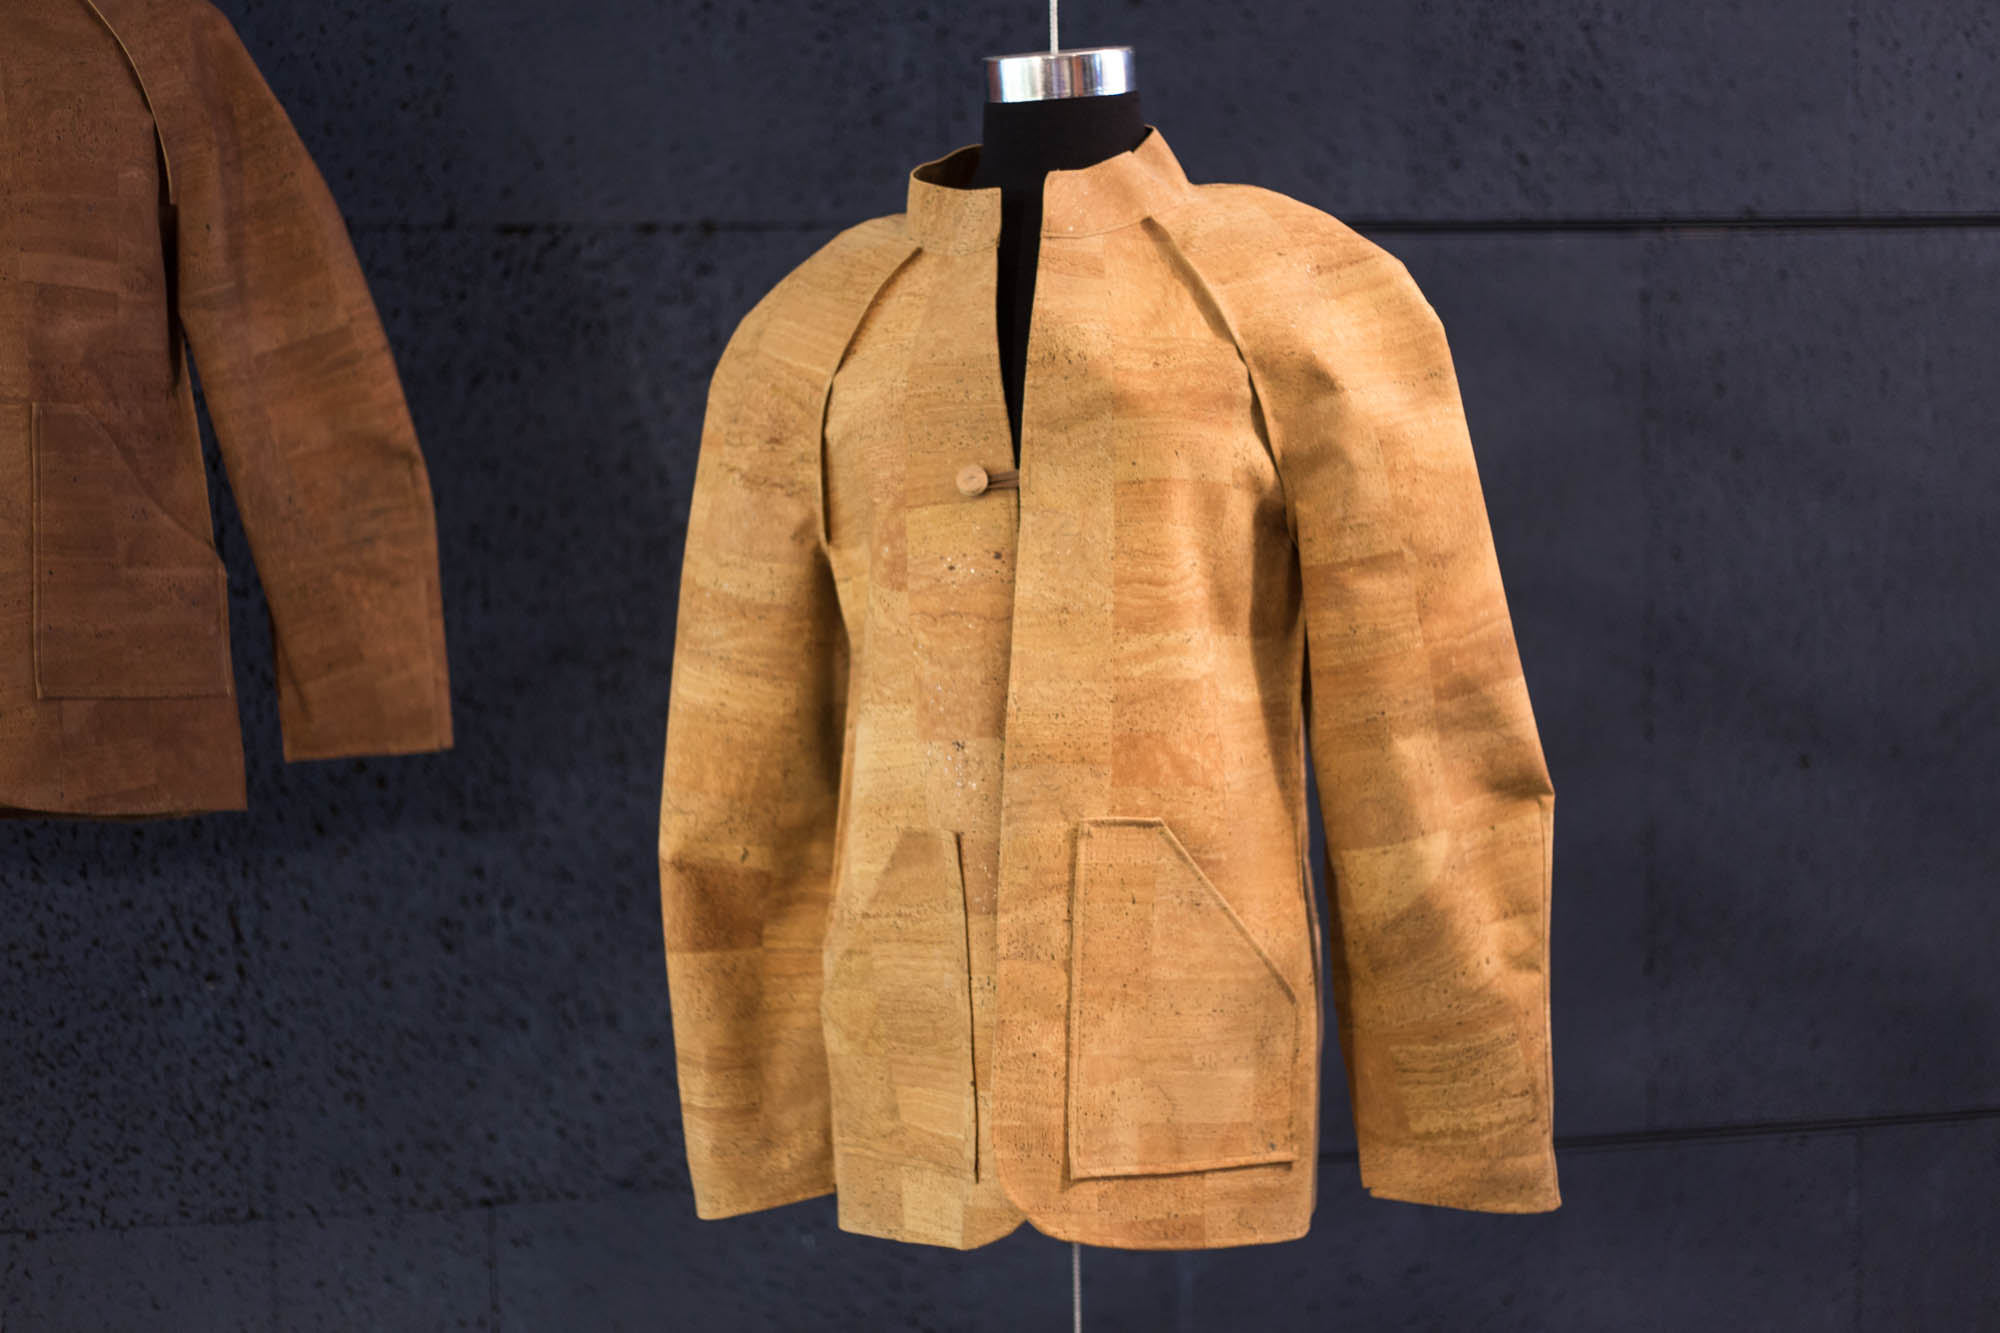 Todd Bracher's Amorim cork jacket